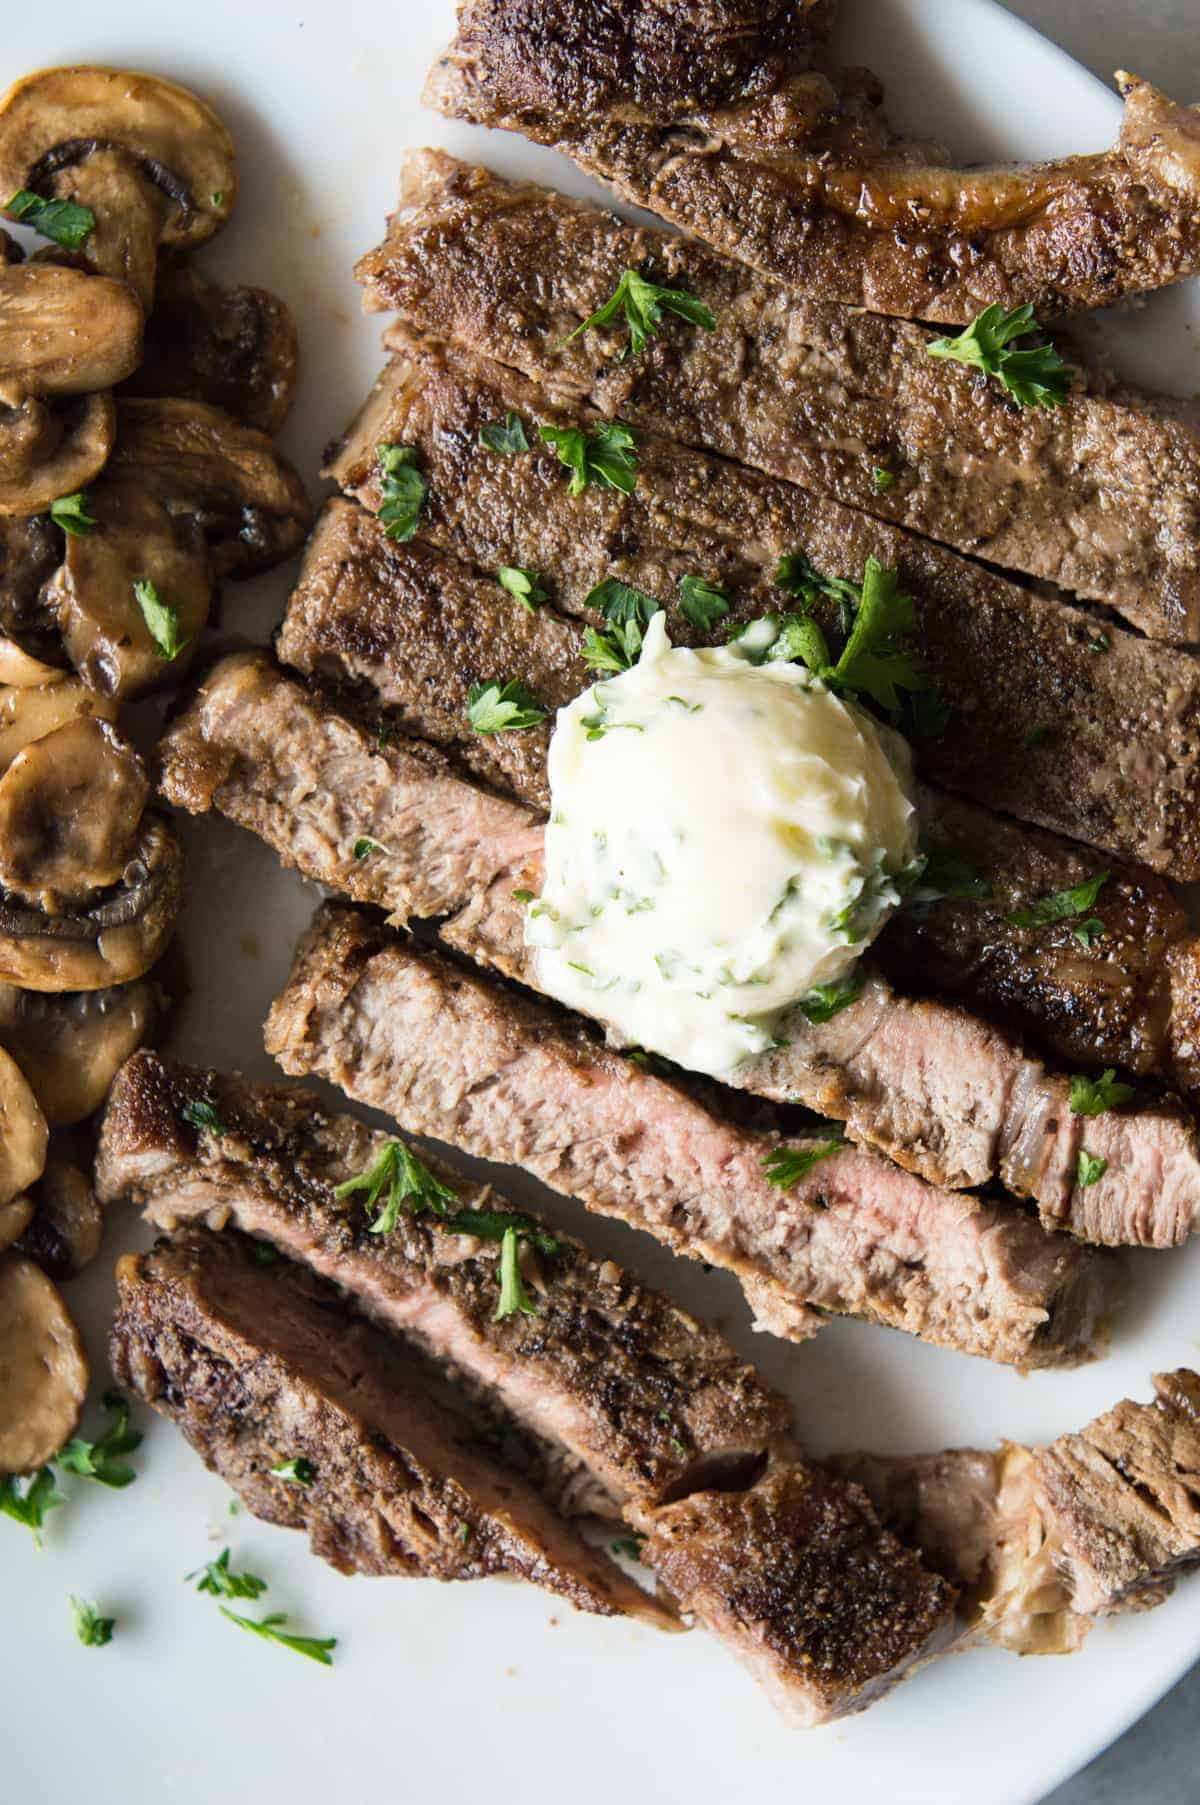 Pan Seared Steak with Garlic Herb Butter - House of Yumm